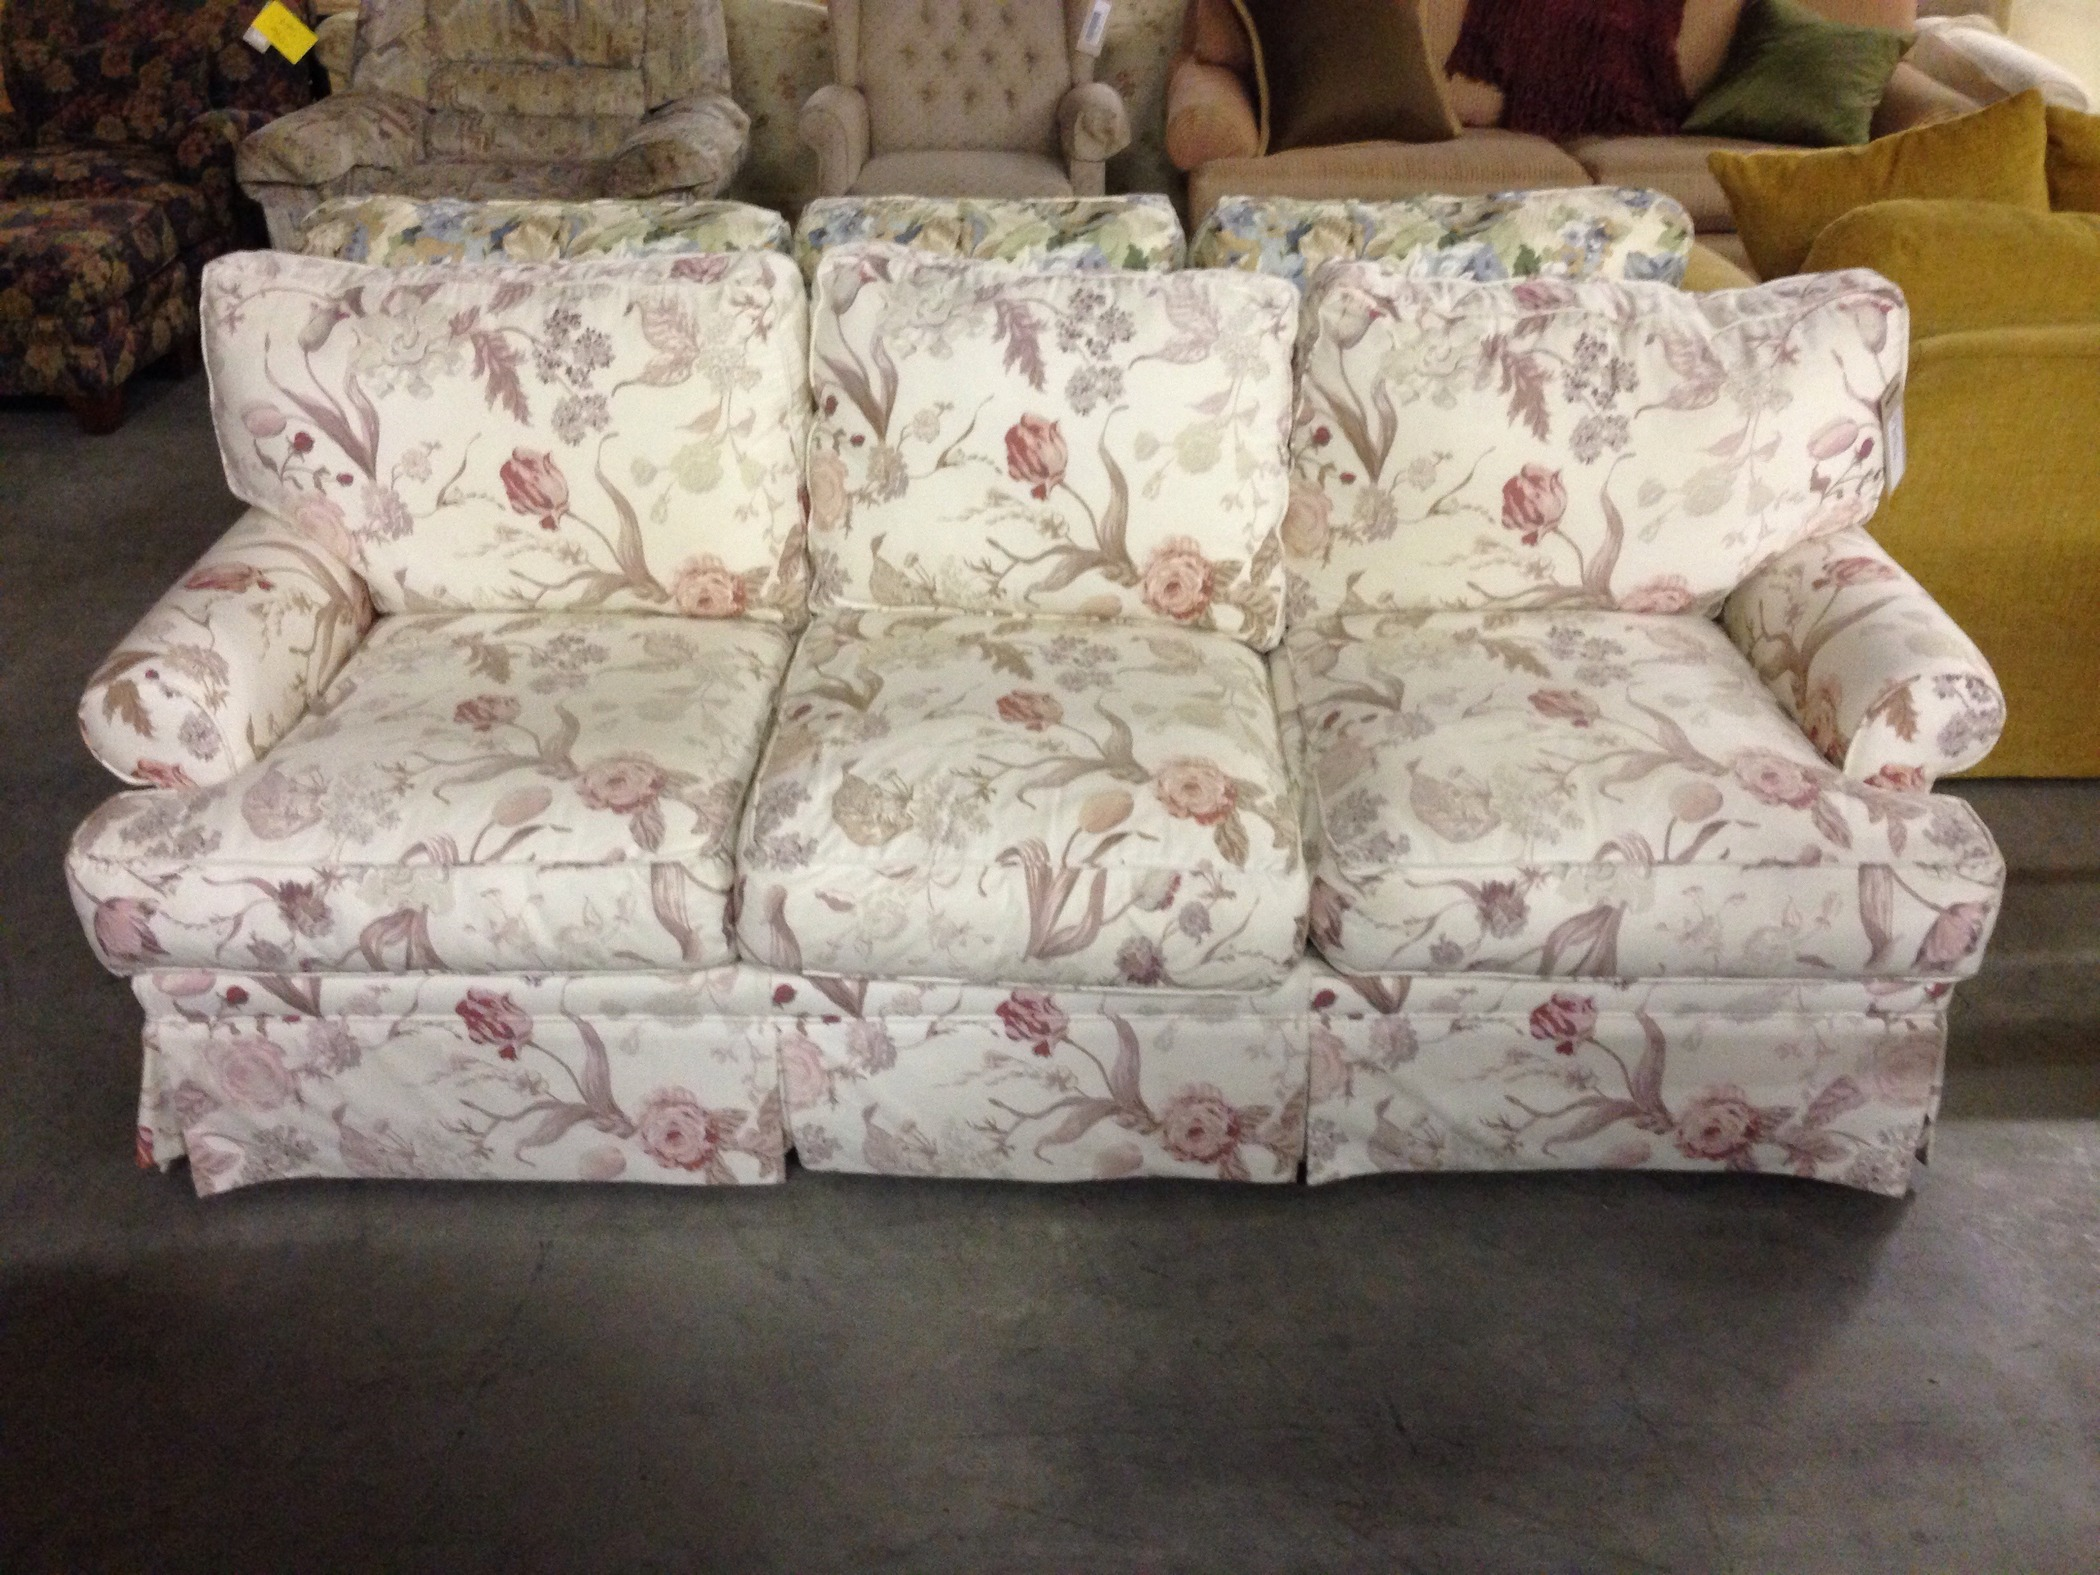 THOMASVILLE FLORAL SOFA   Allegheny Furniture Consignment